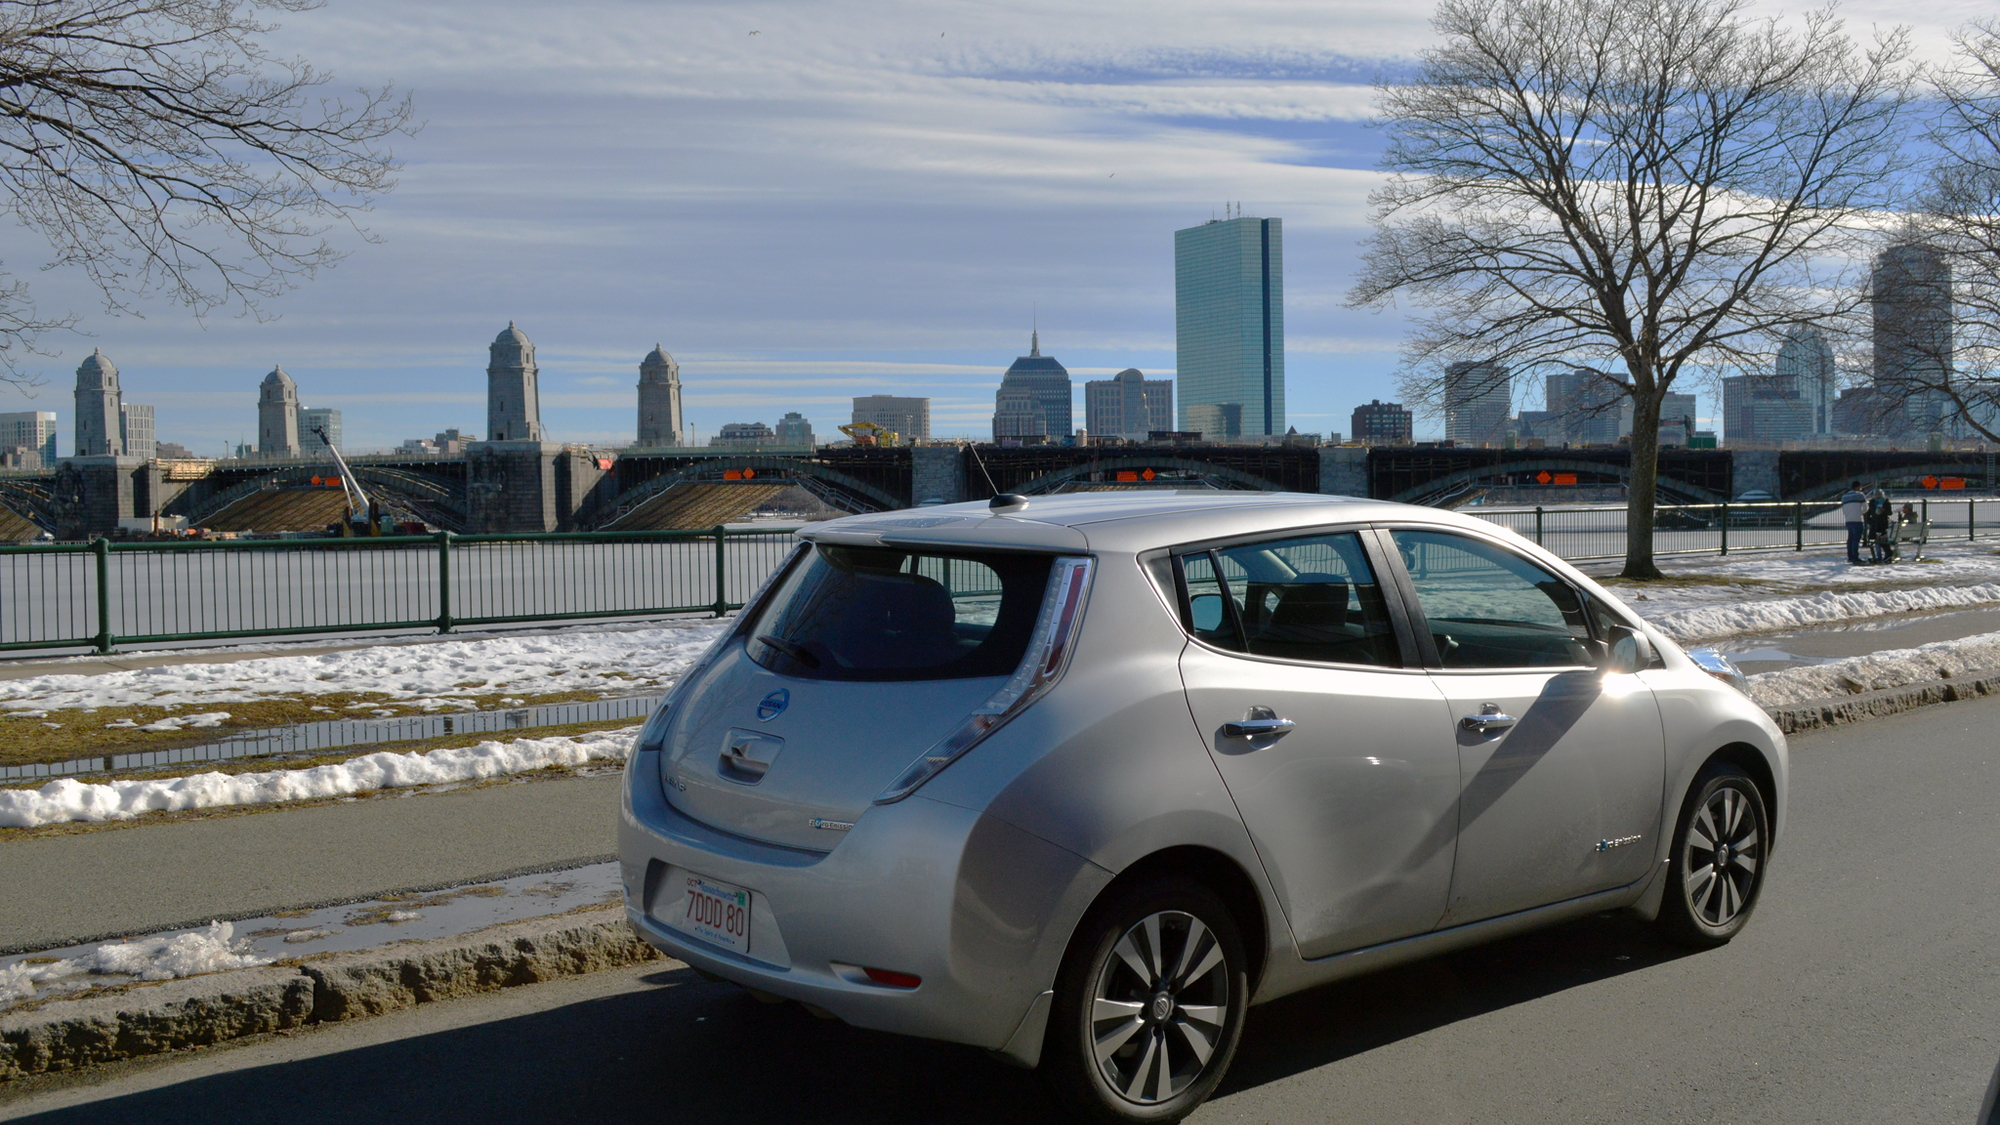 2015 Nissan Leaf: one year later, owner offers pros and cons